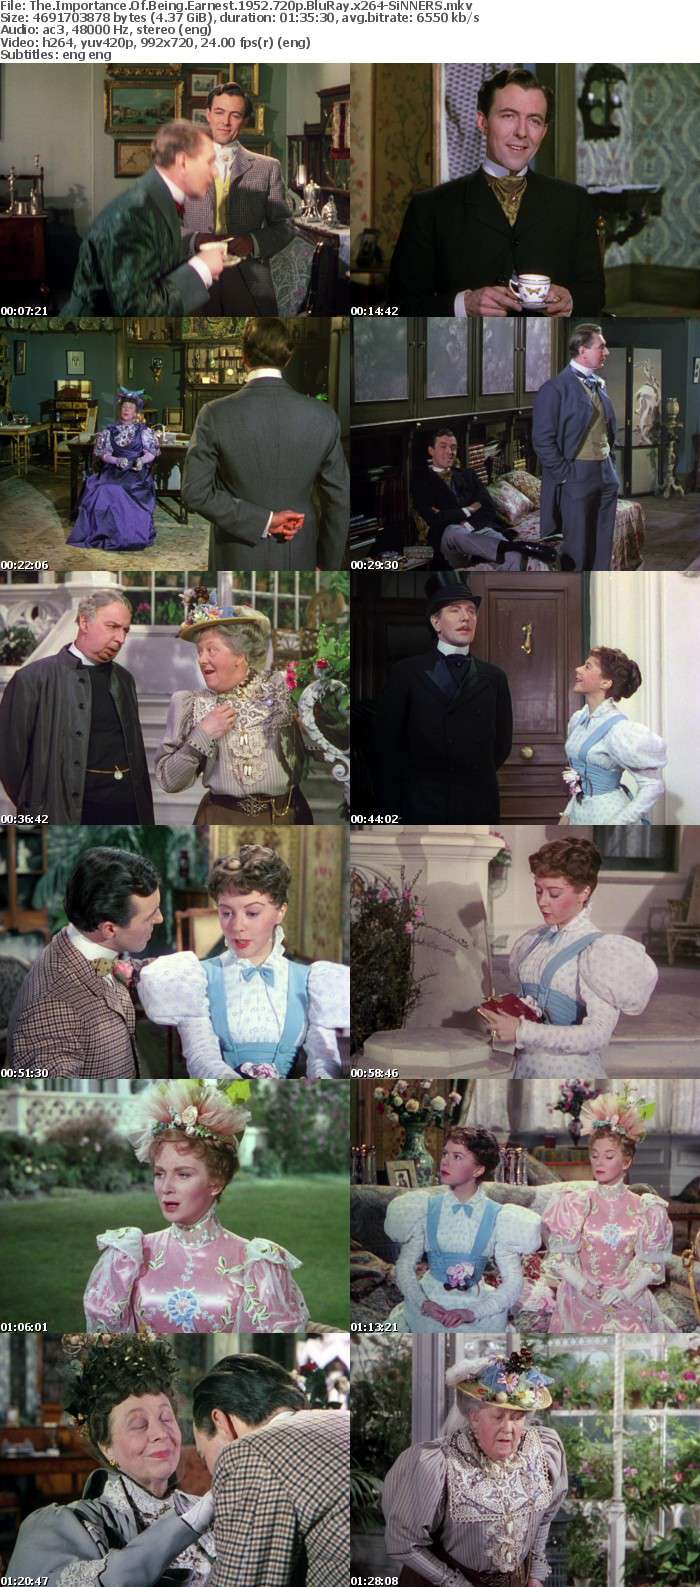 The Importance Of Being Earnest 1952 720p BluRay x264-SiNNERS